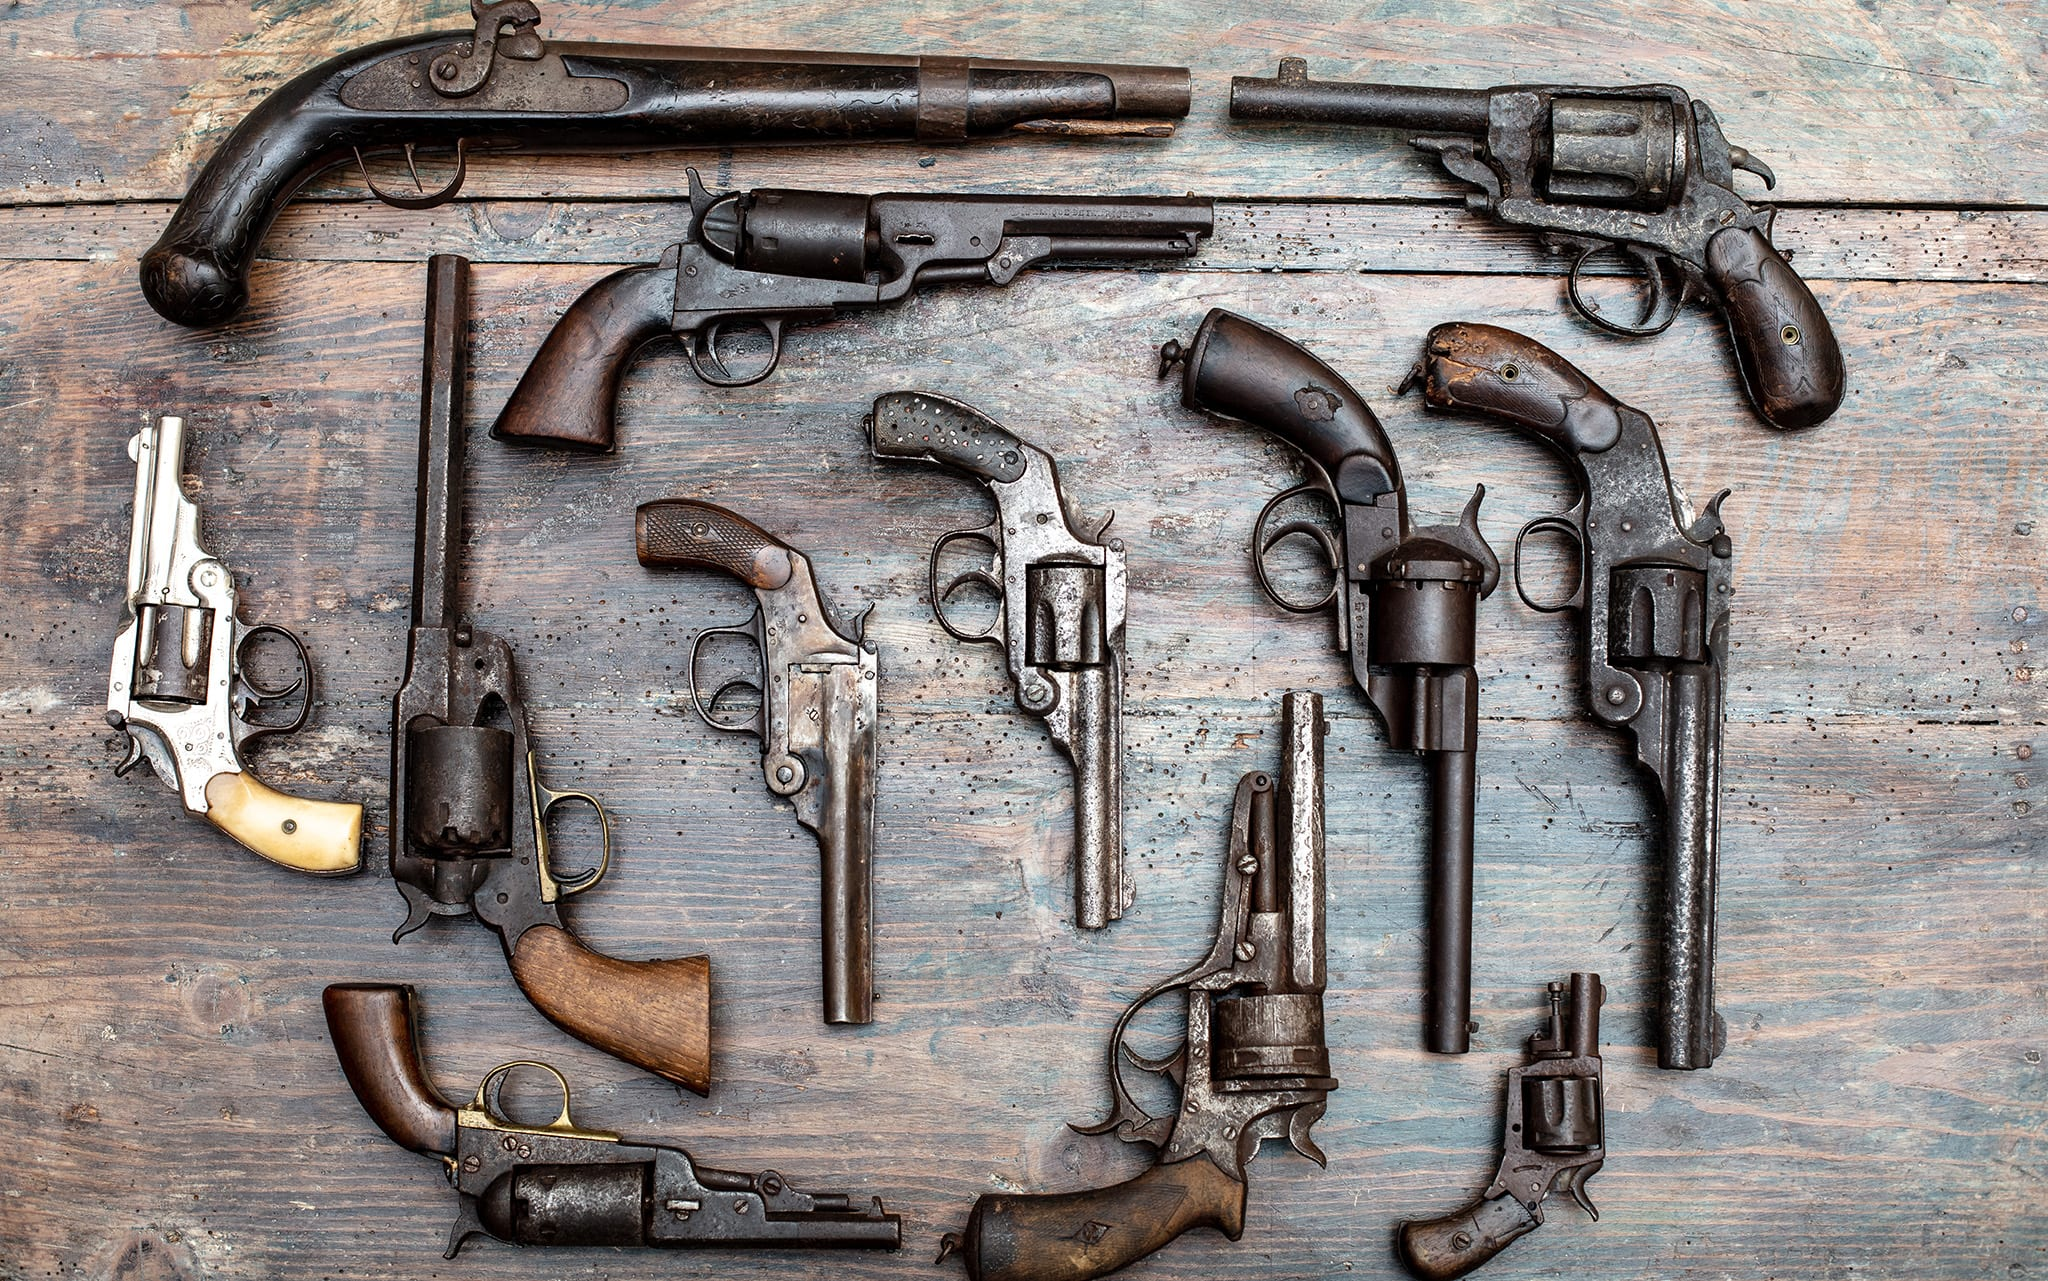 Armory display of historic guns and pistols in a overhead view on a vintage wooden table background